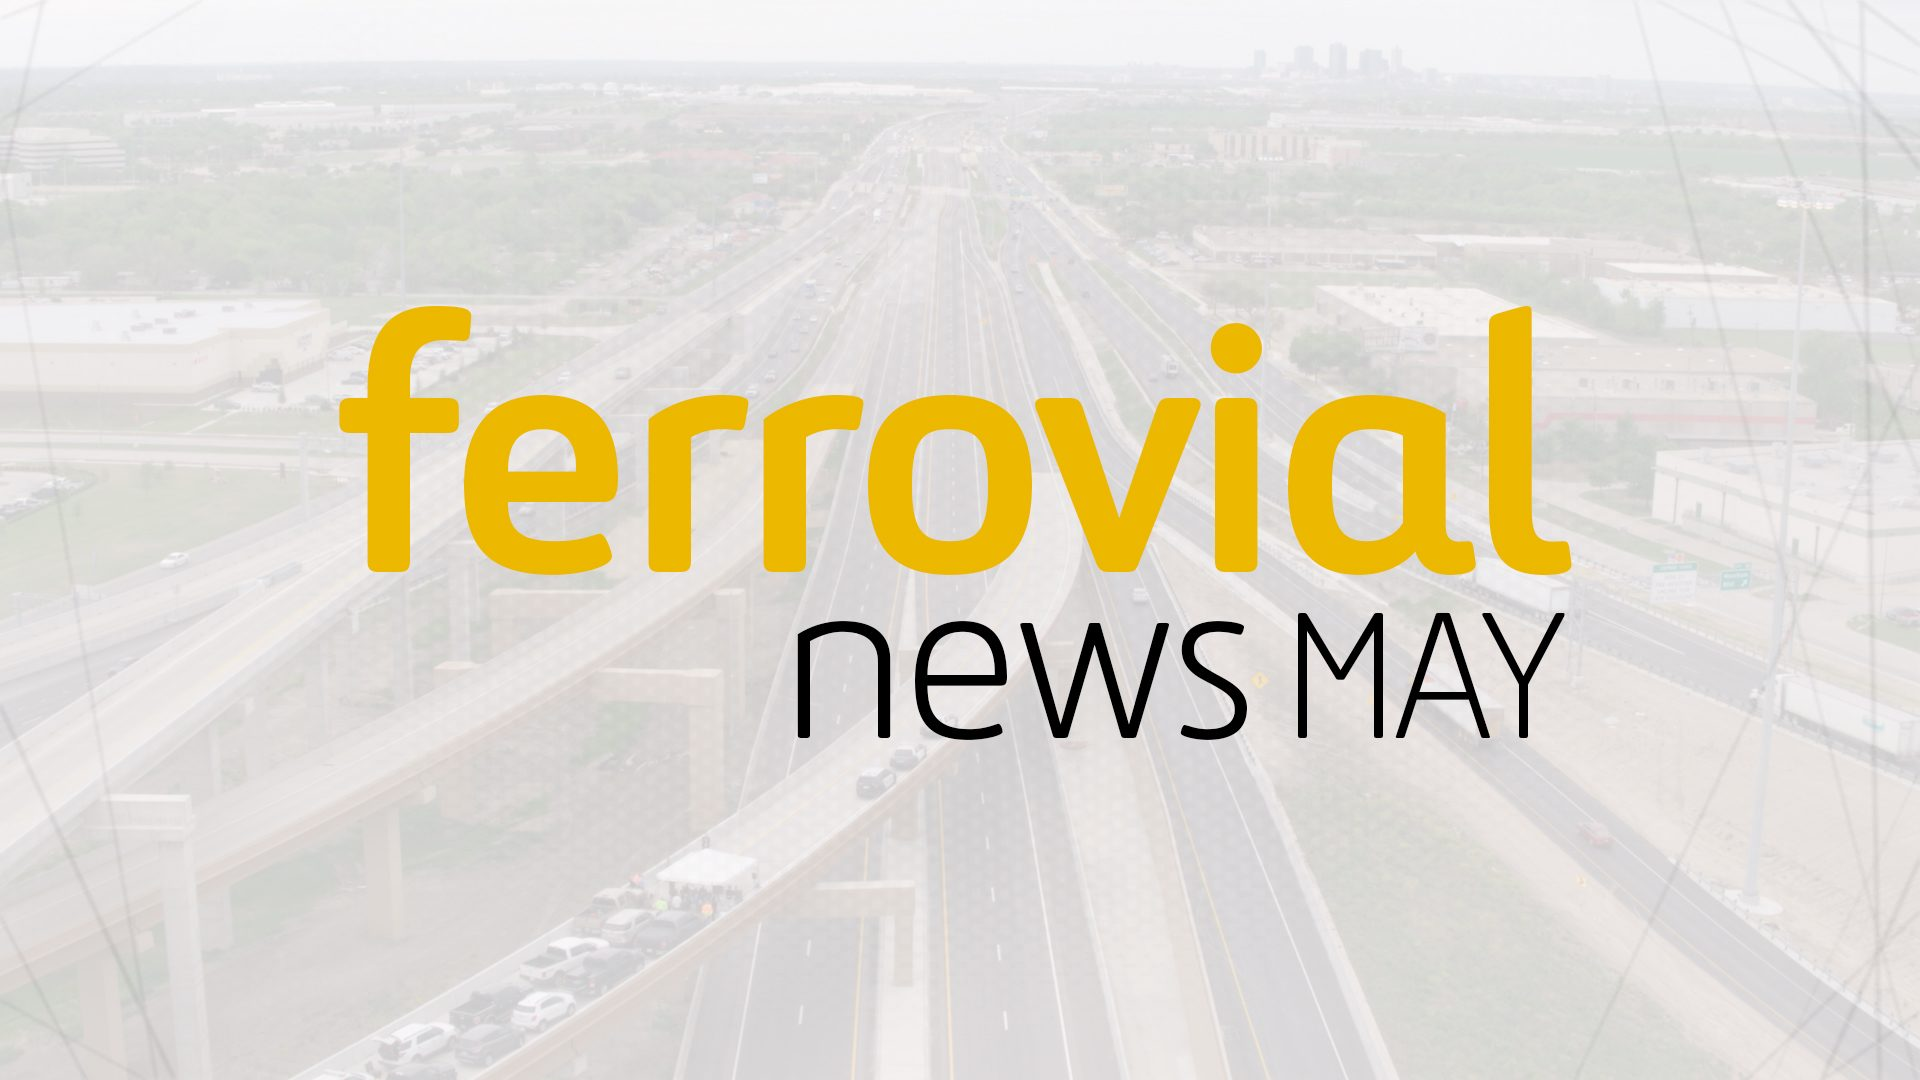 Ferrovial News May 2018